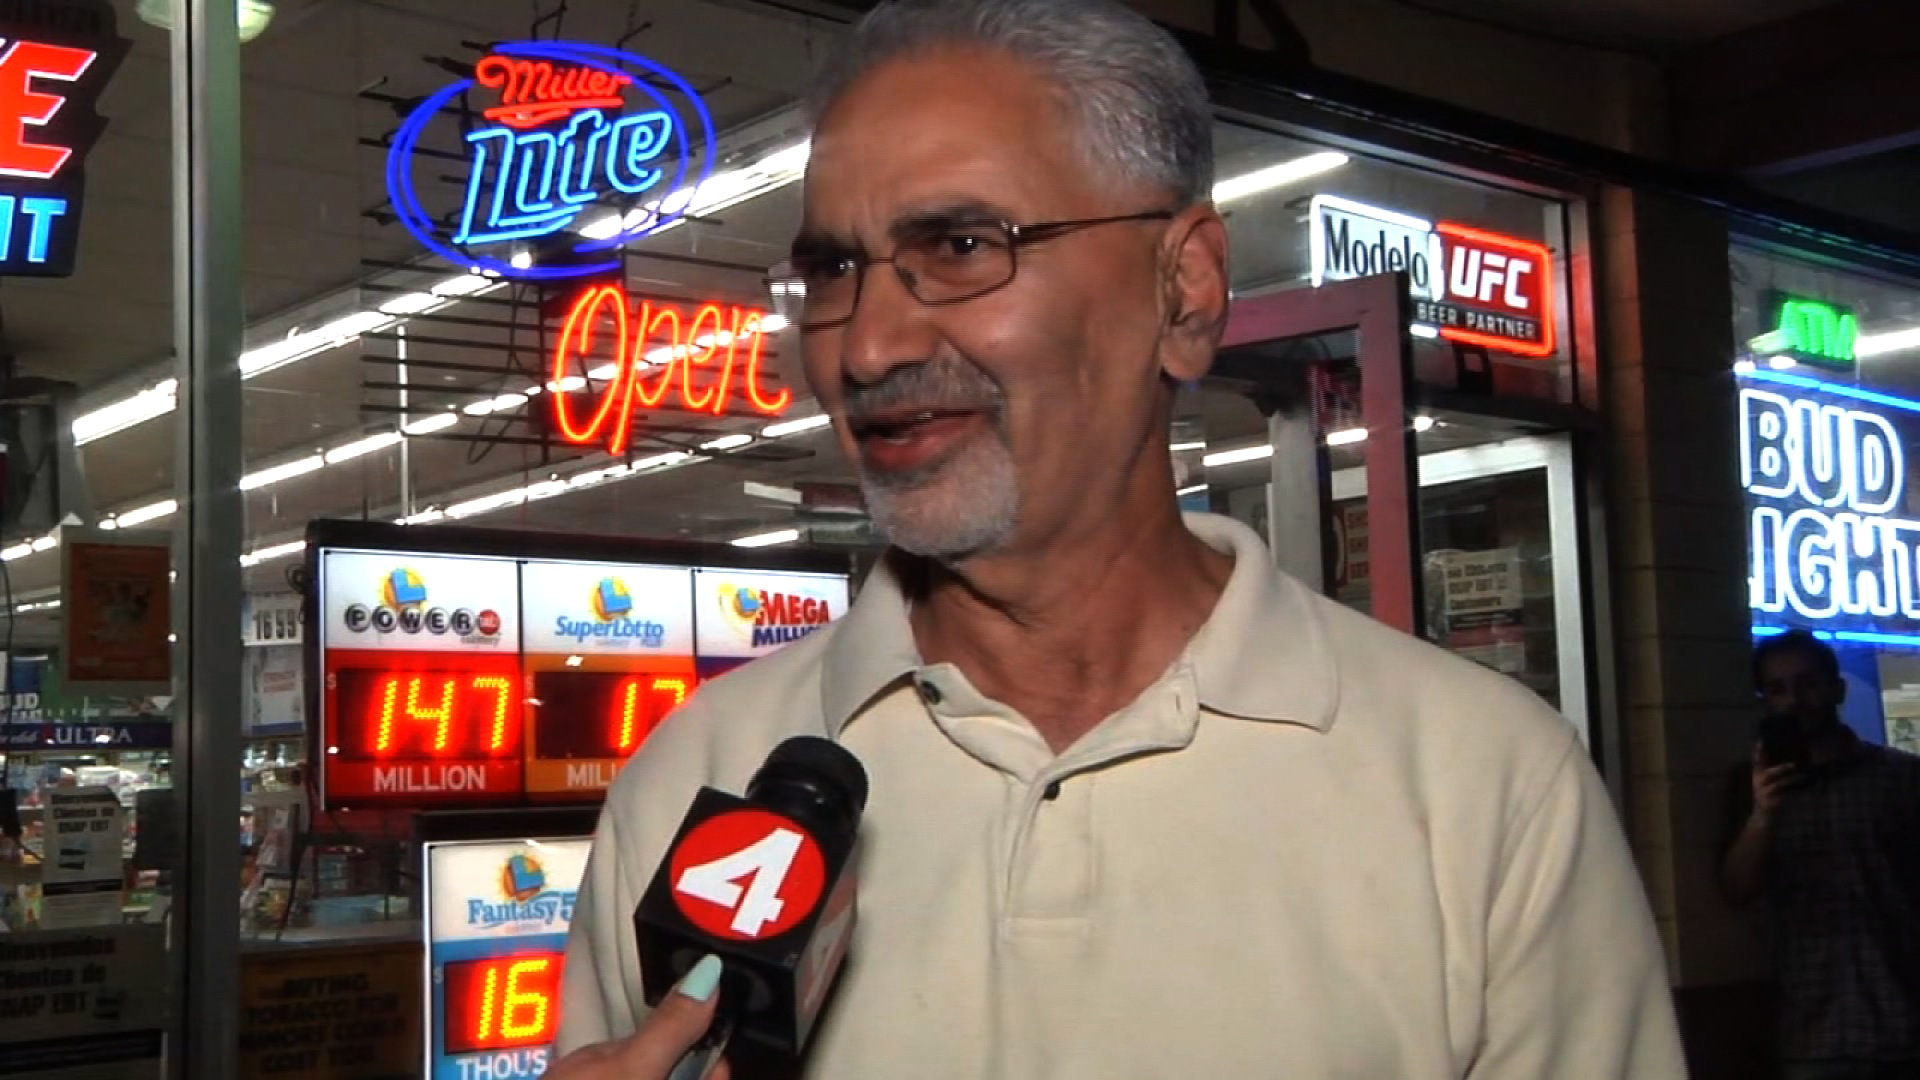 Store owner gets $1M for selling winning ticket - CNN Video